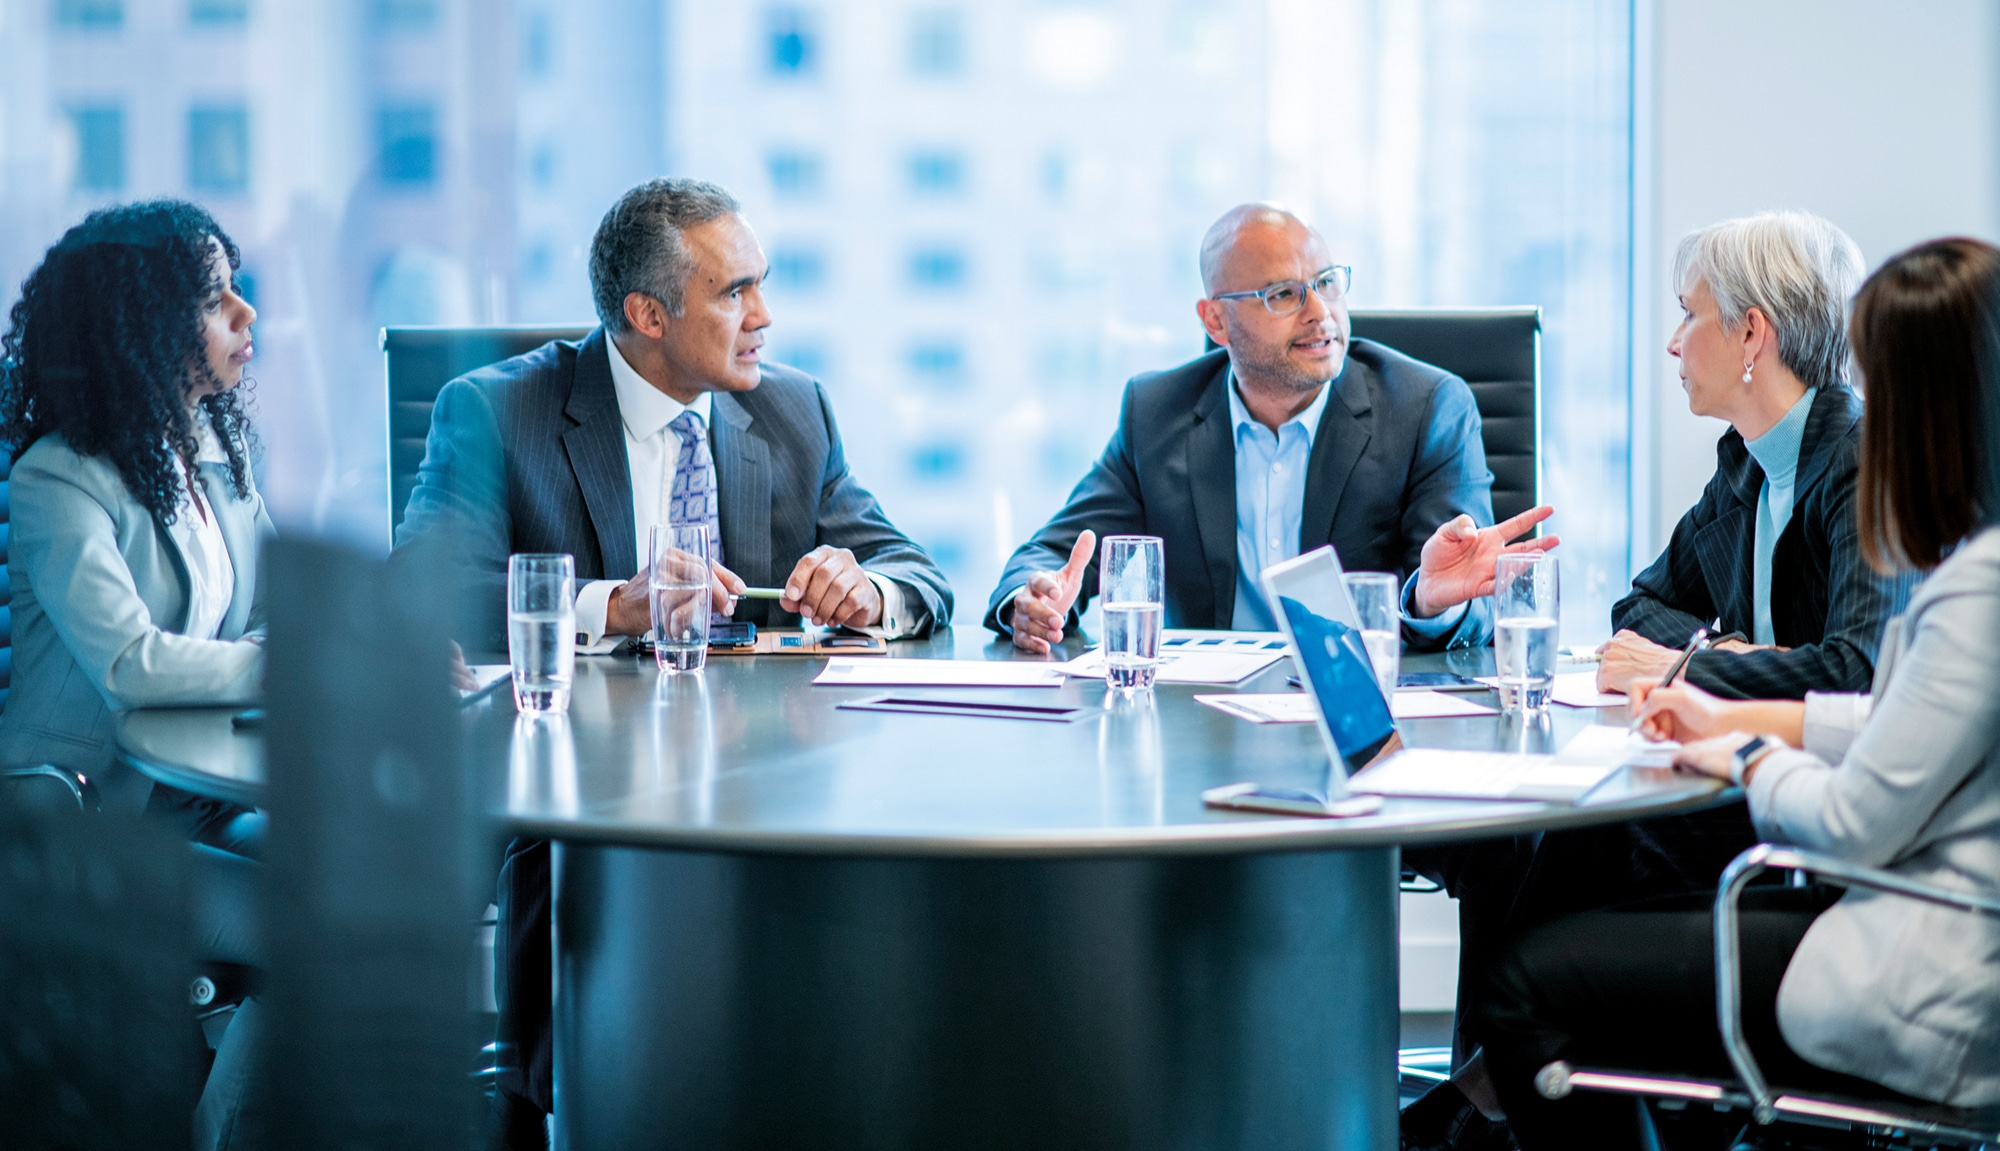 Where was the board? Ethical Boardroom